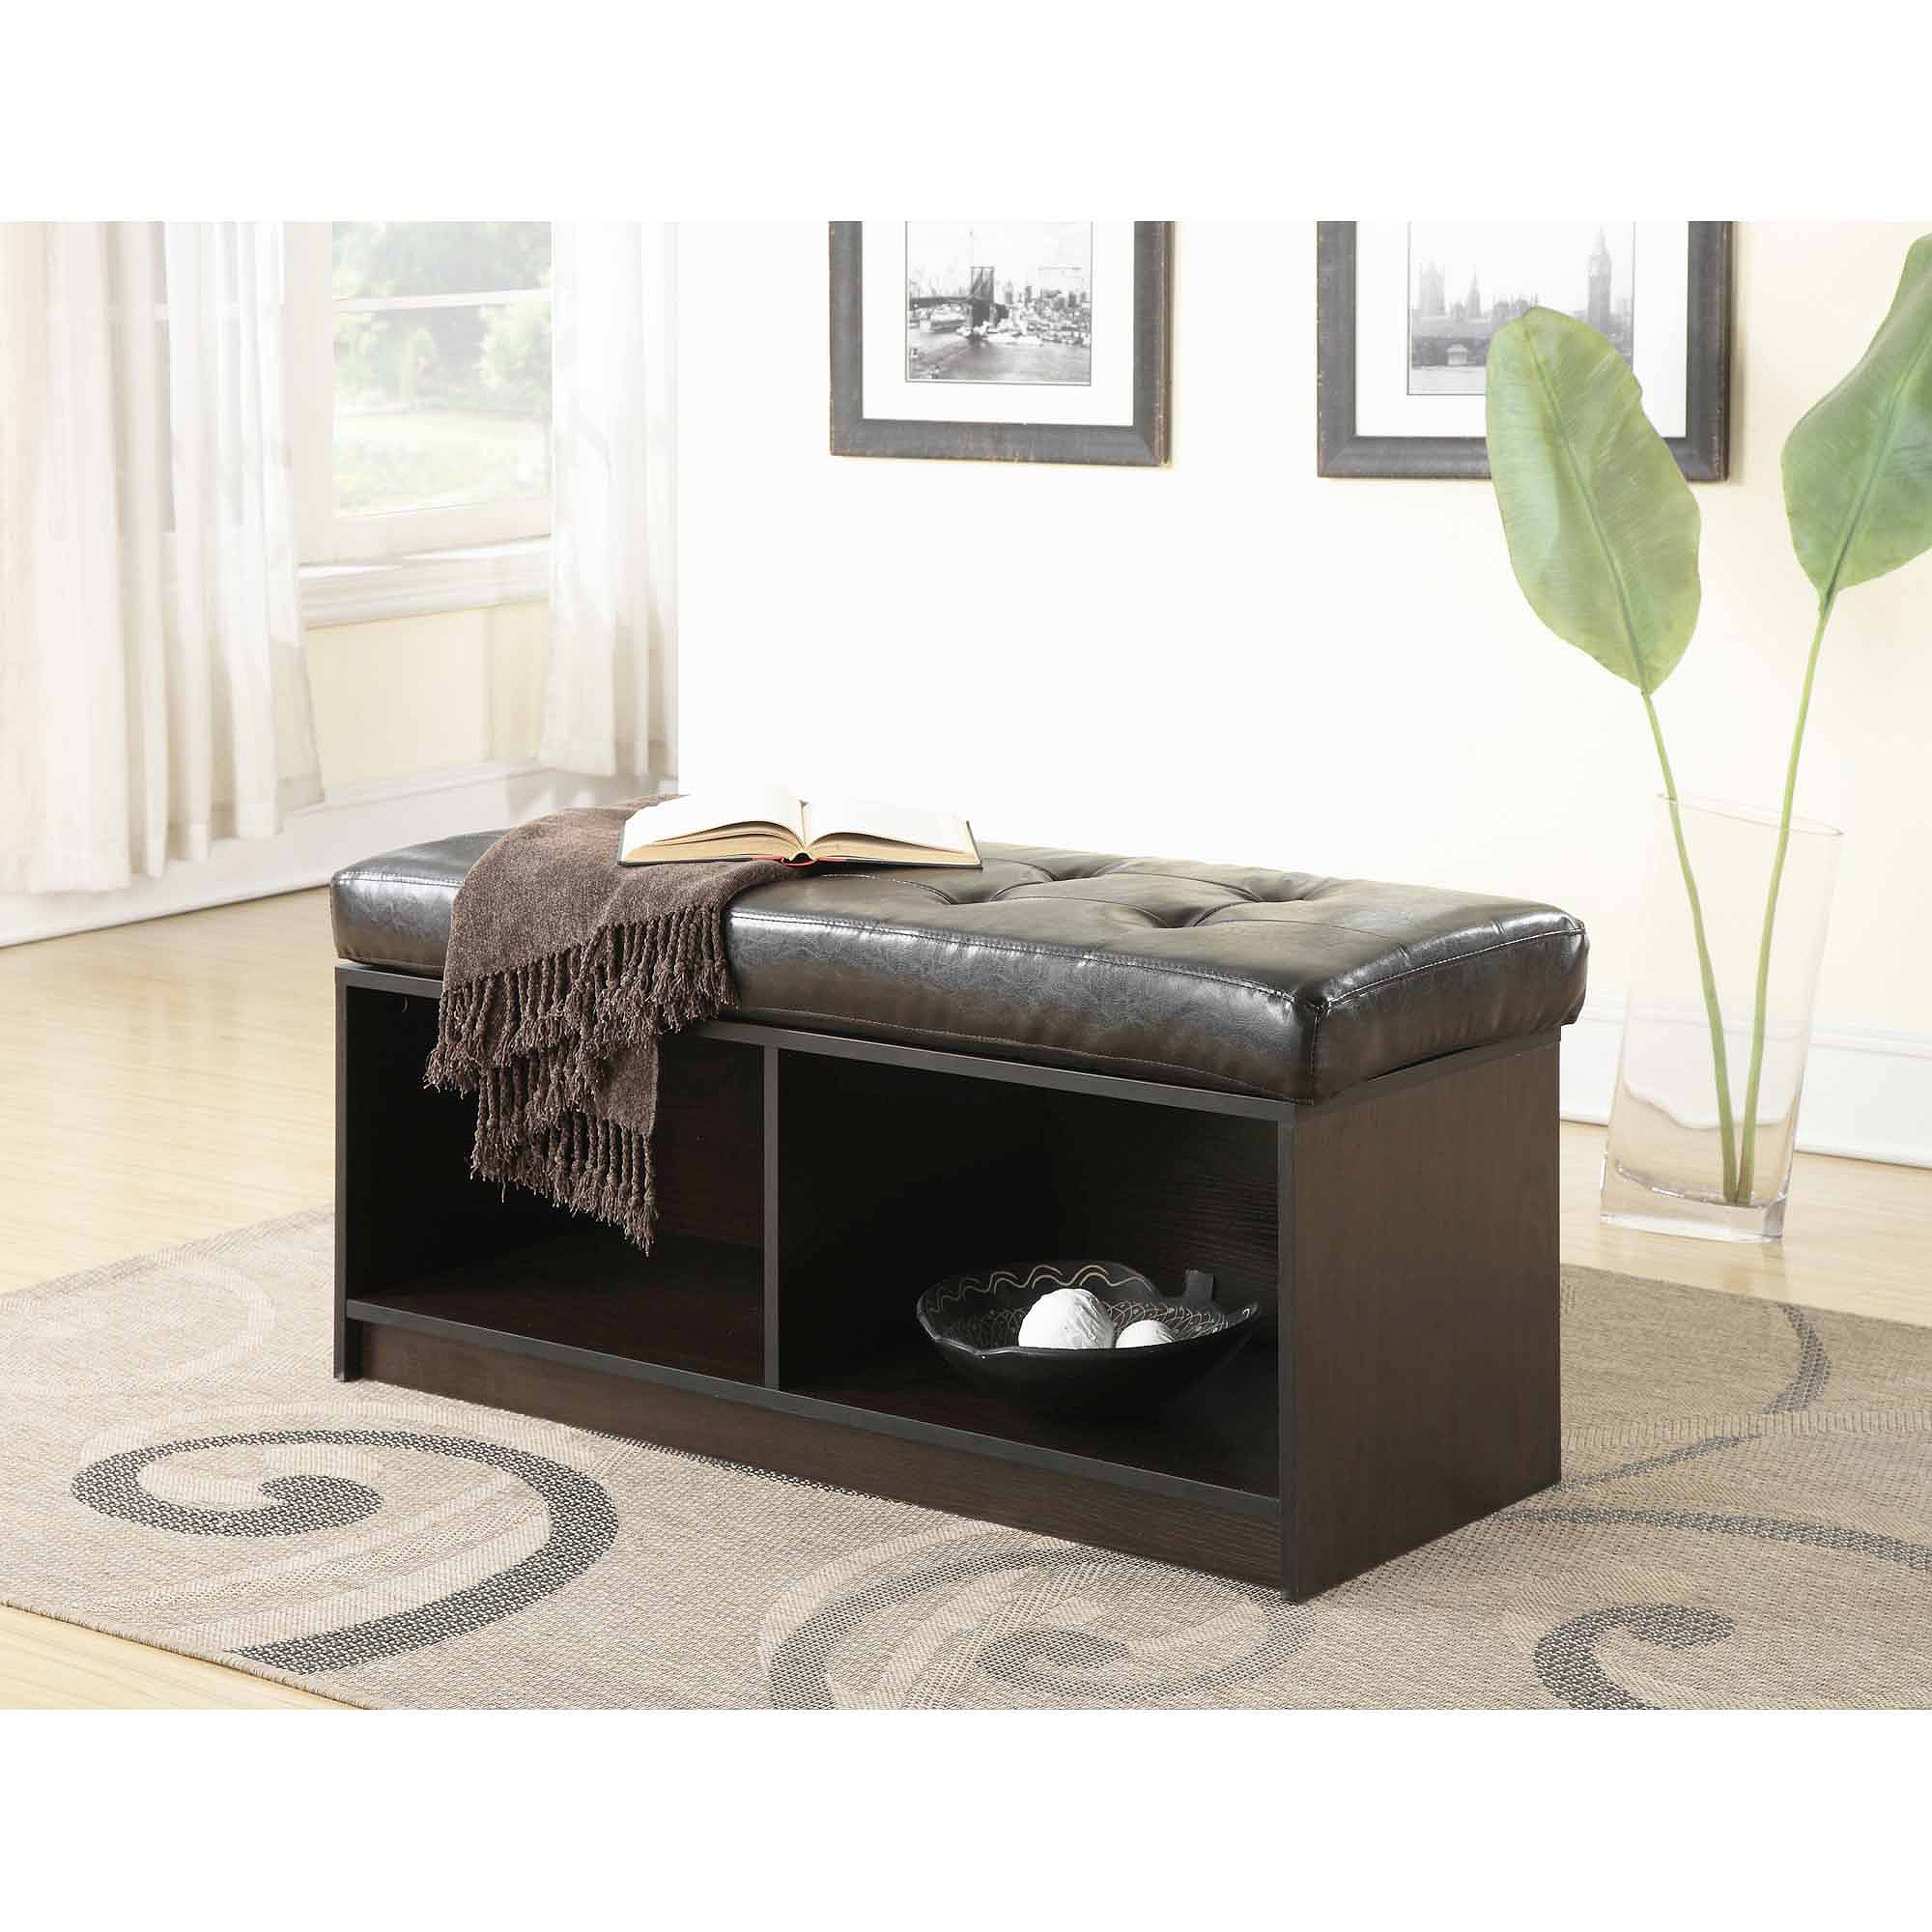 Convenience Concepts Designs4Comfort Broadmoor Entryway Faux Leather Bench Storage Ottoman, Multiple Colors